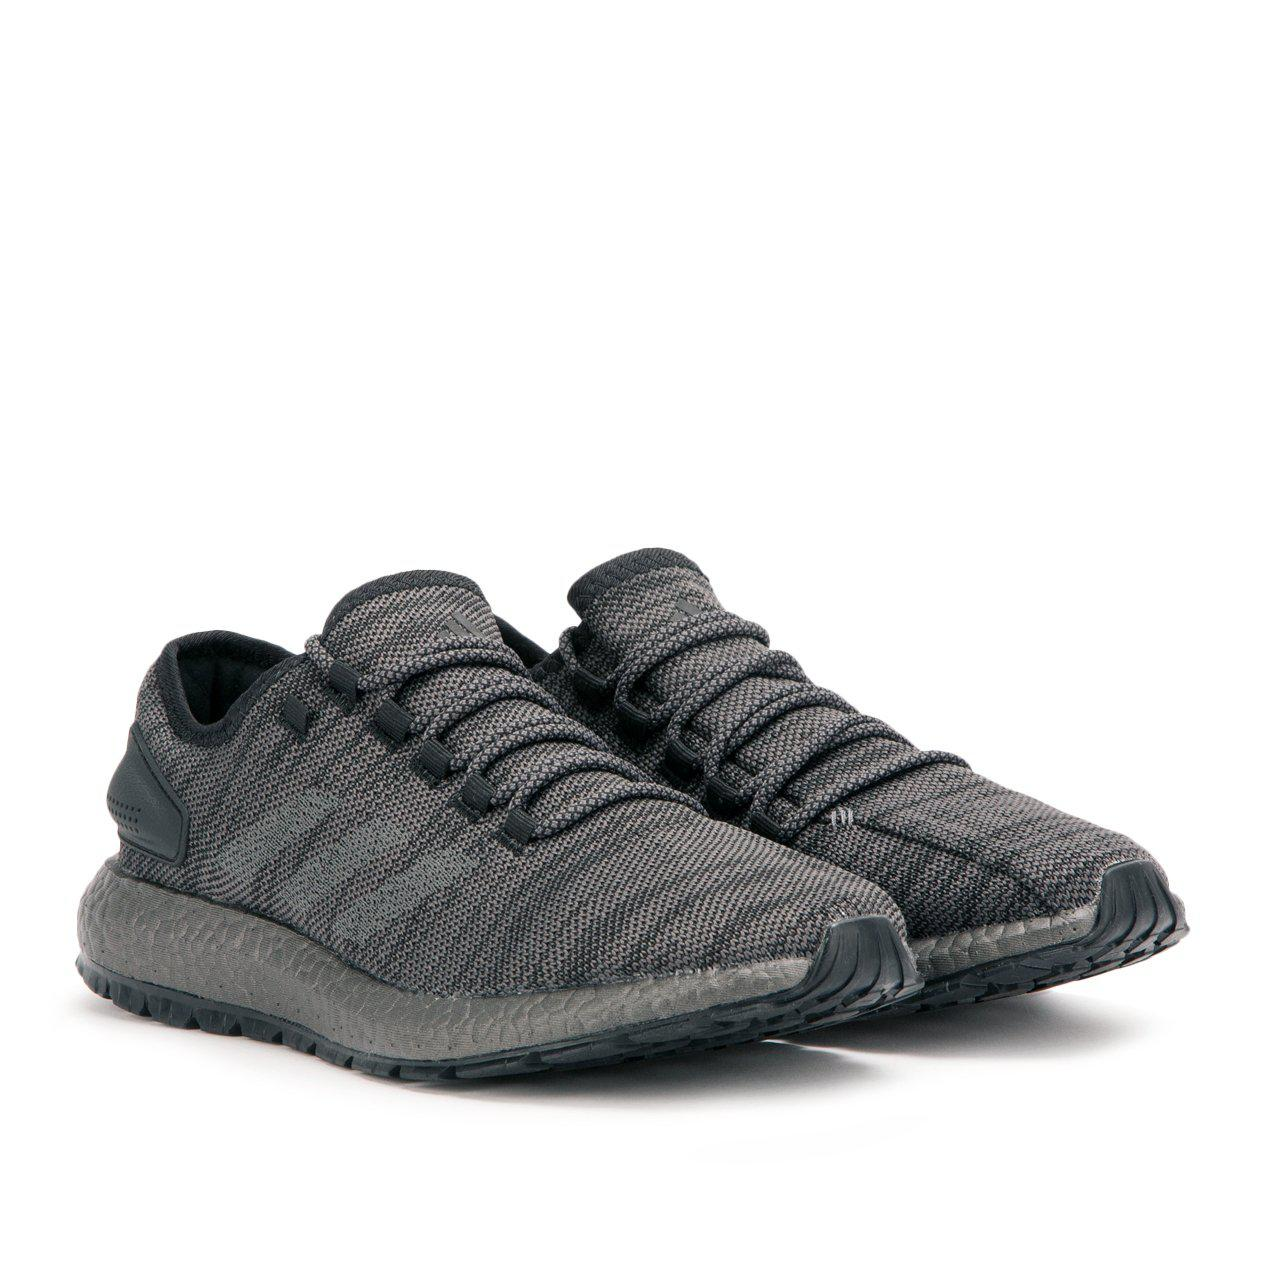 7f20a62ed92 Lyst - adidas Pure Boost All Terrain